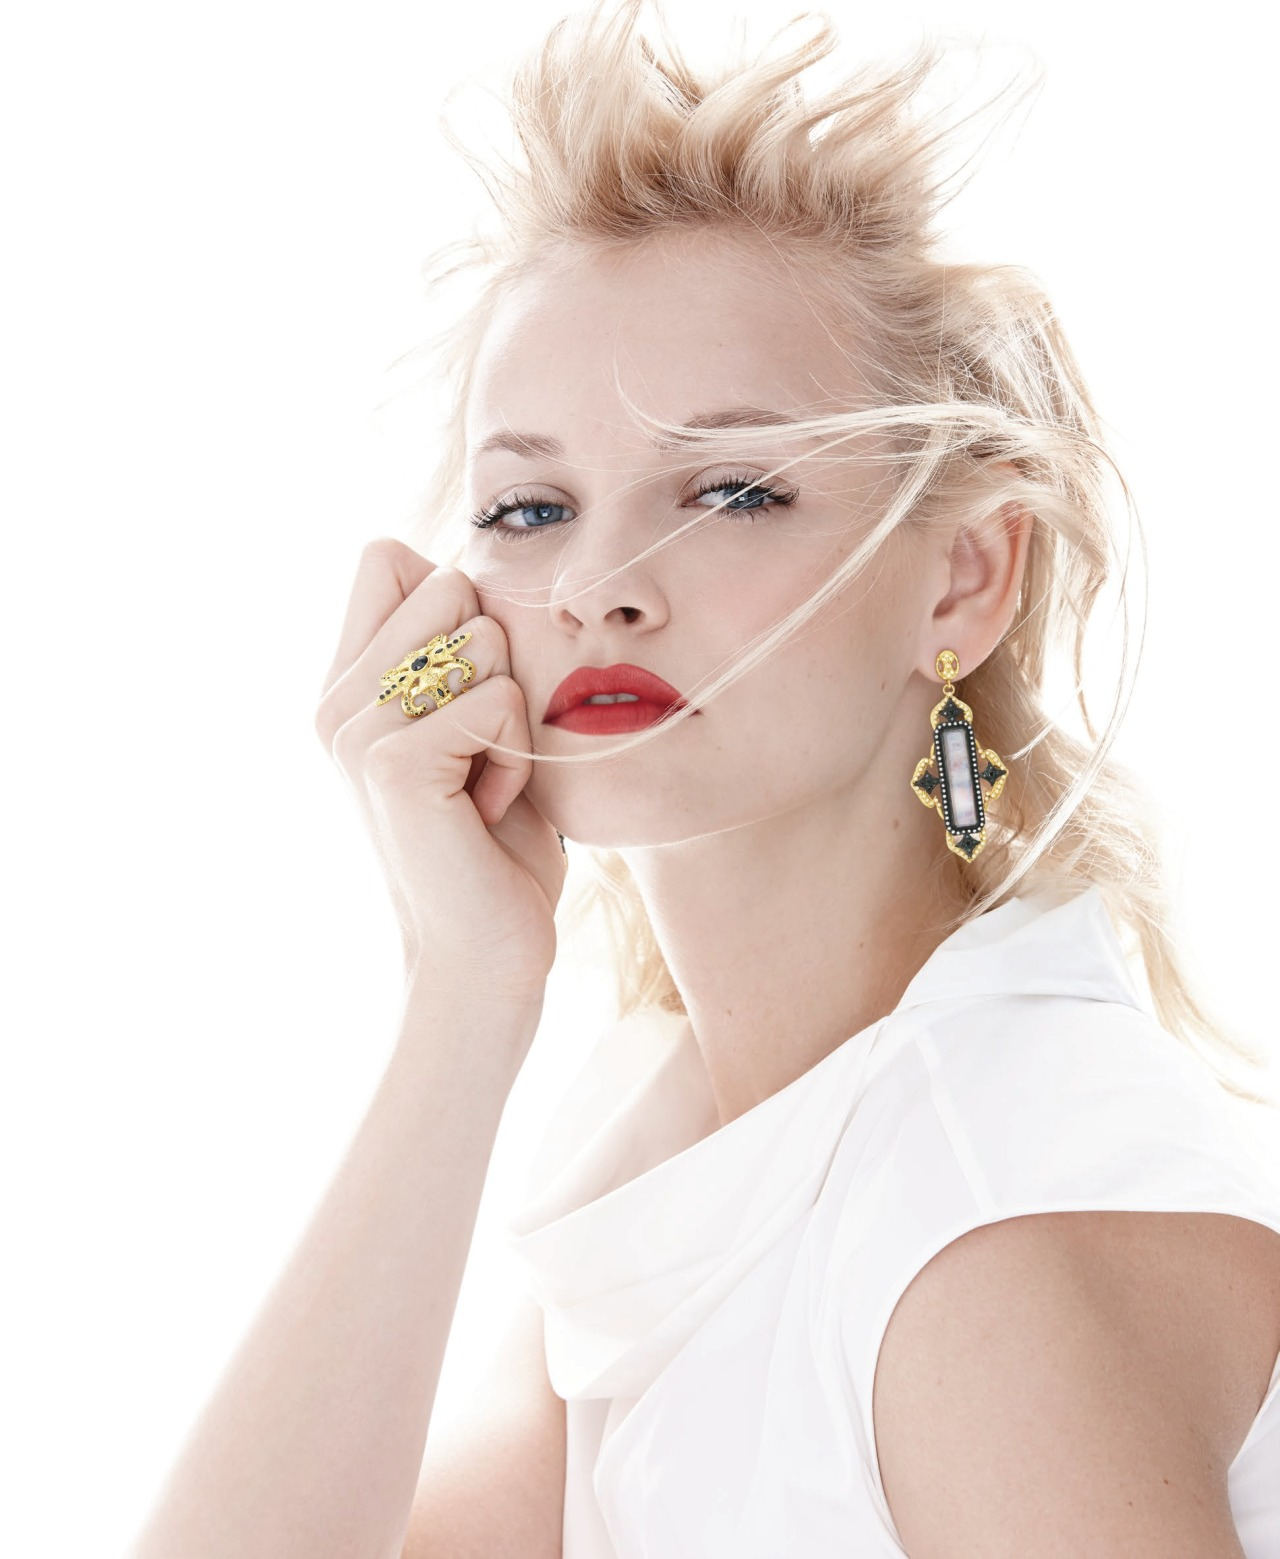 """stormtrooperfashion:  Ginta Lapina in """"Charm School"""" byWalter ChinandJeff StephensforNeiman Marcus' The May Book 2014 See more from this set, includingJac Jagaciak,here."""